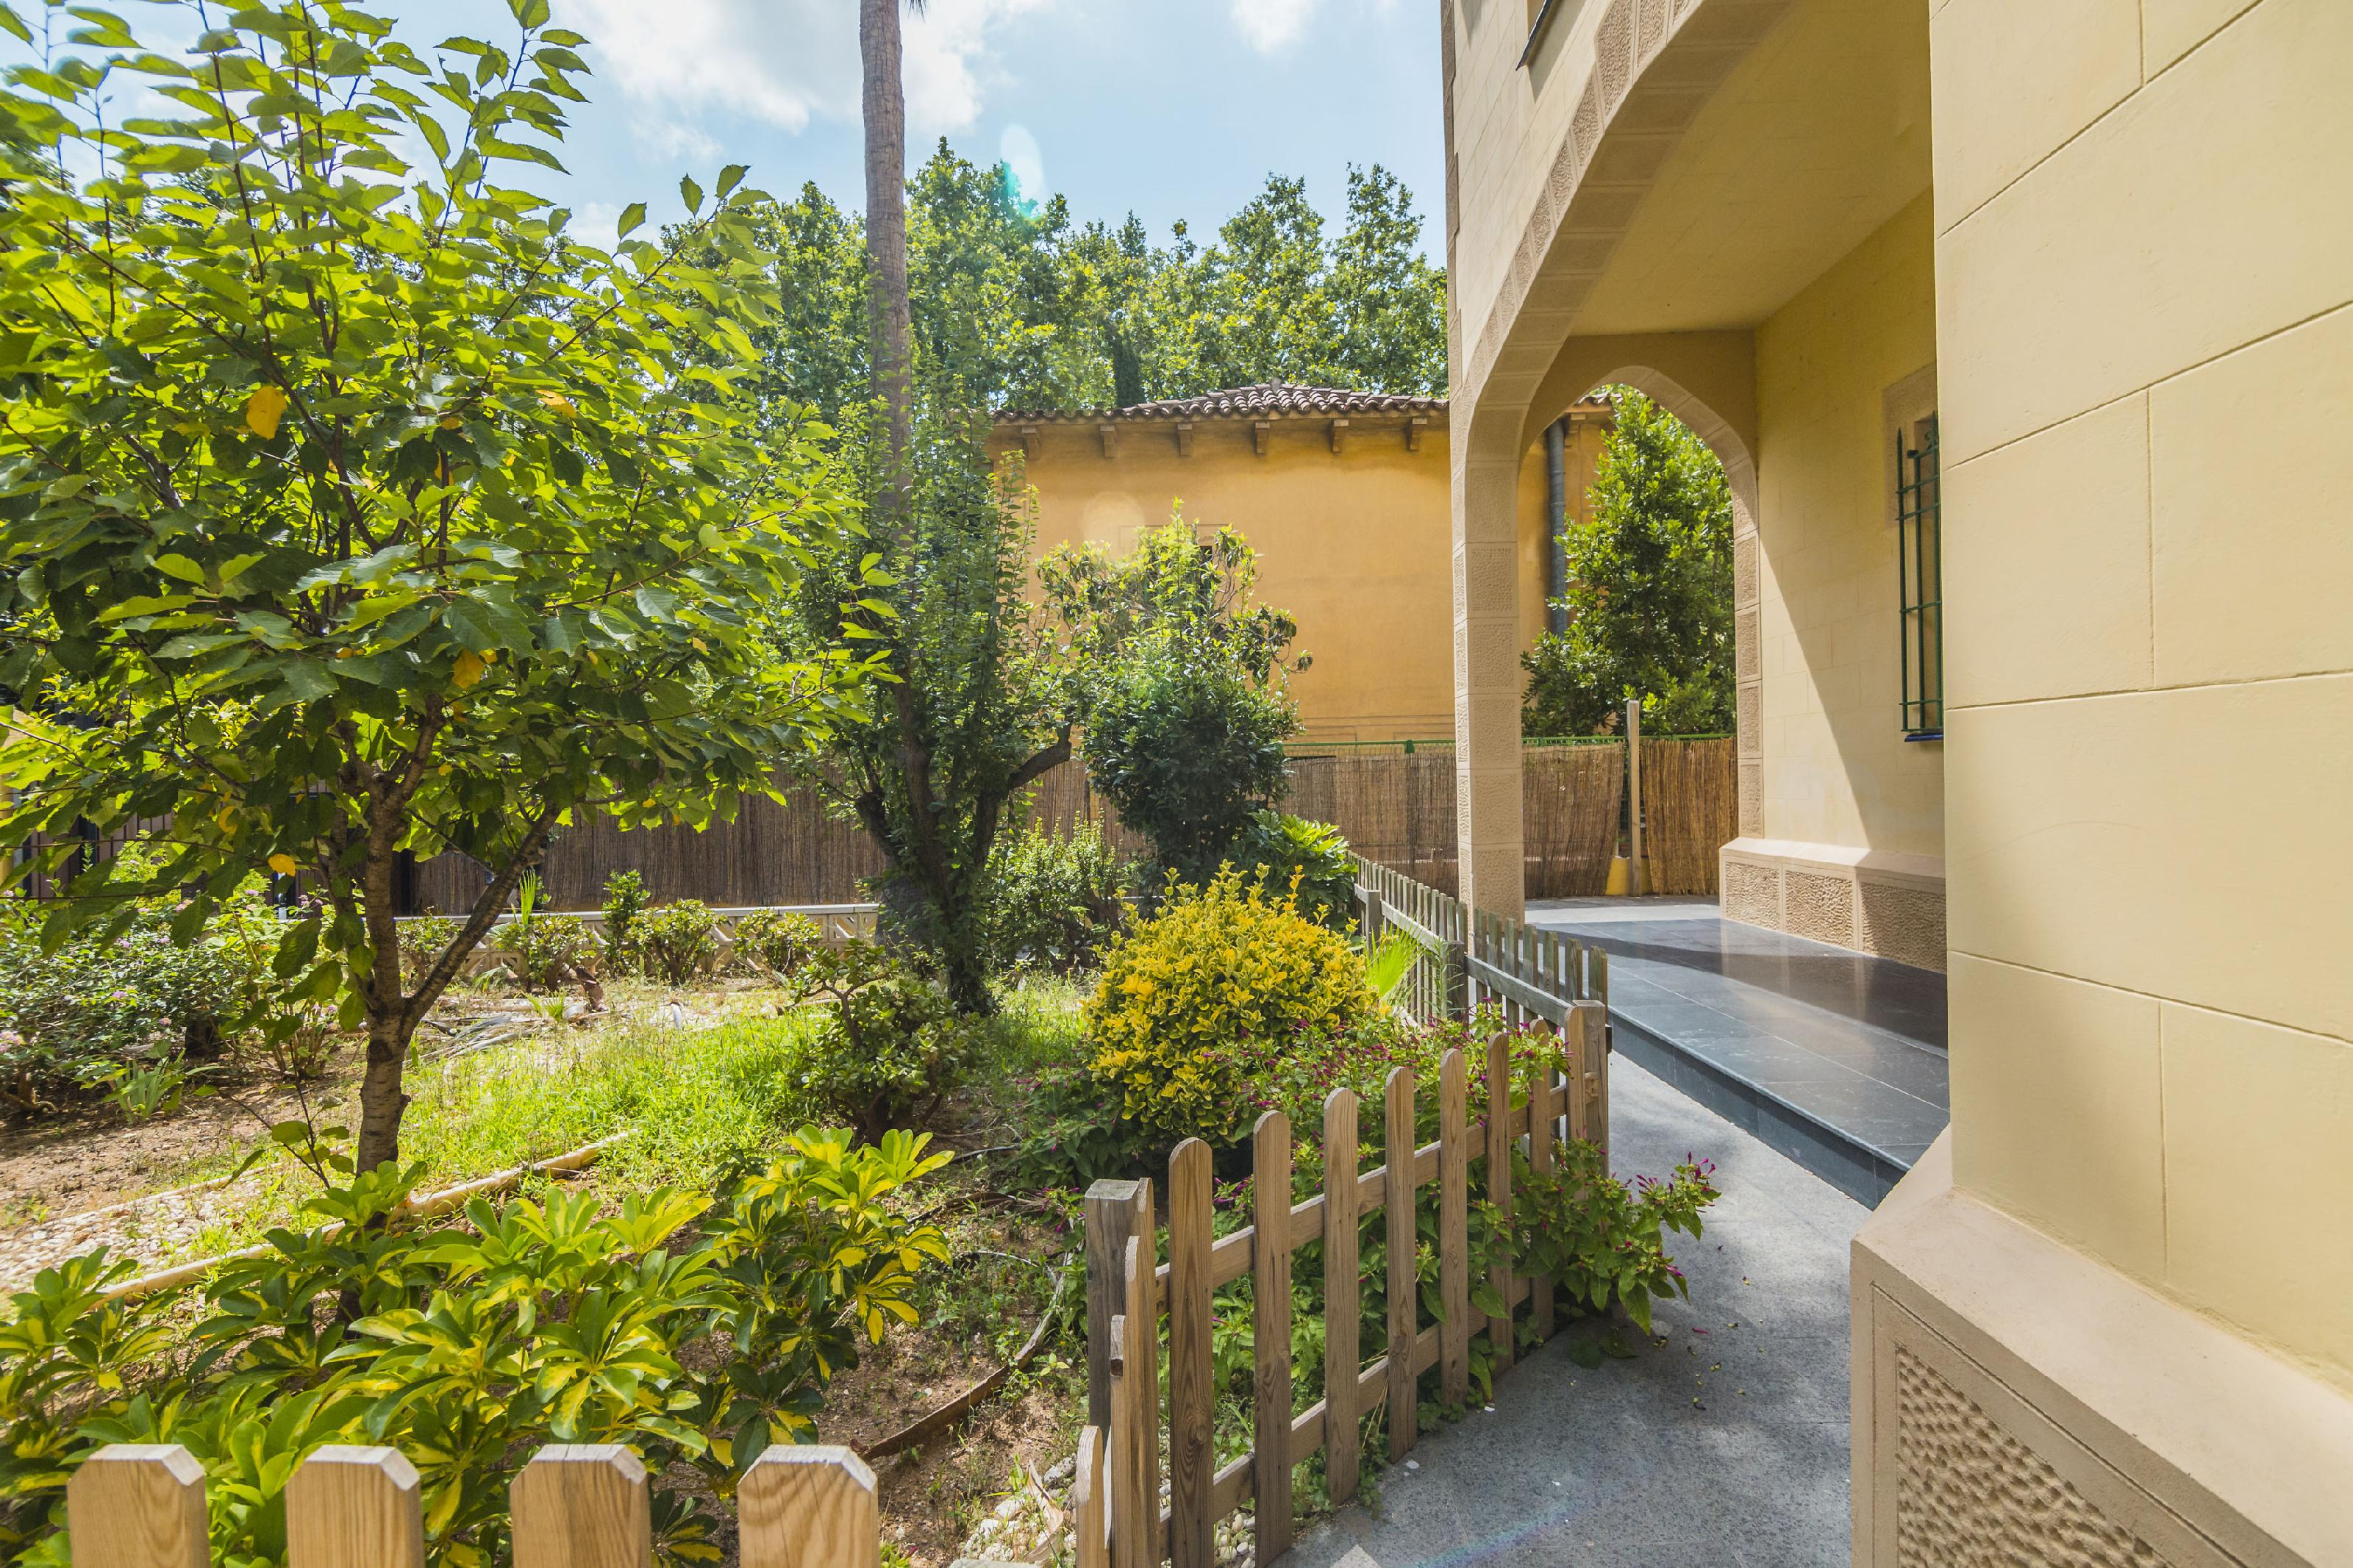 223076 House Isolated for sale in Sarrià-Sant Gervasi, Sarrià 8